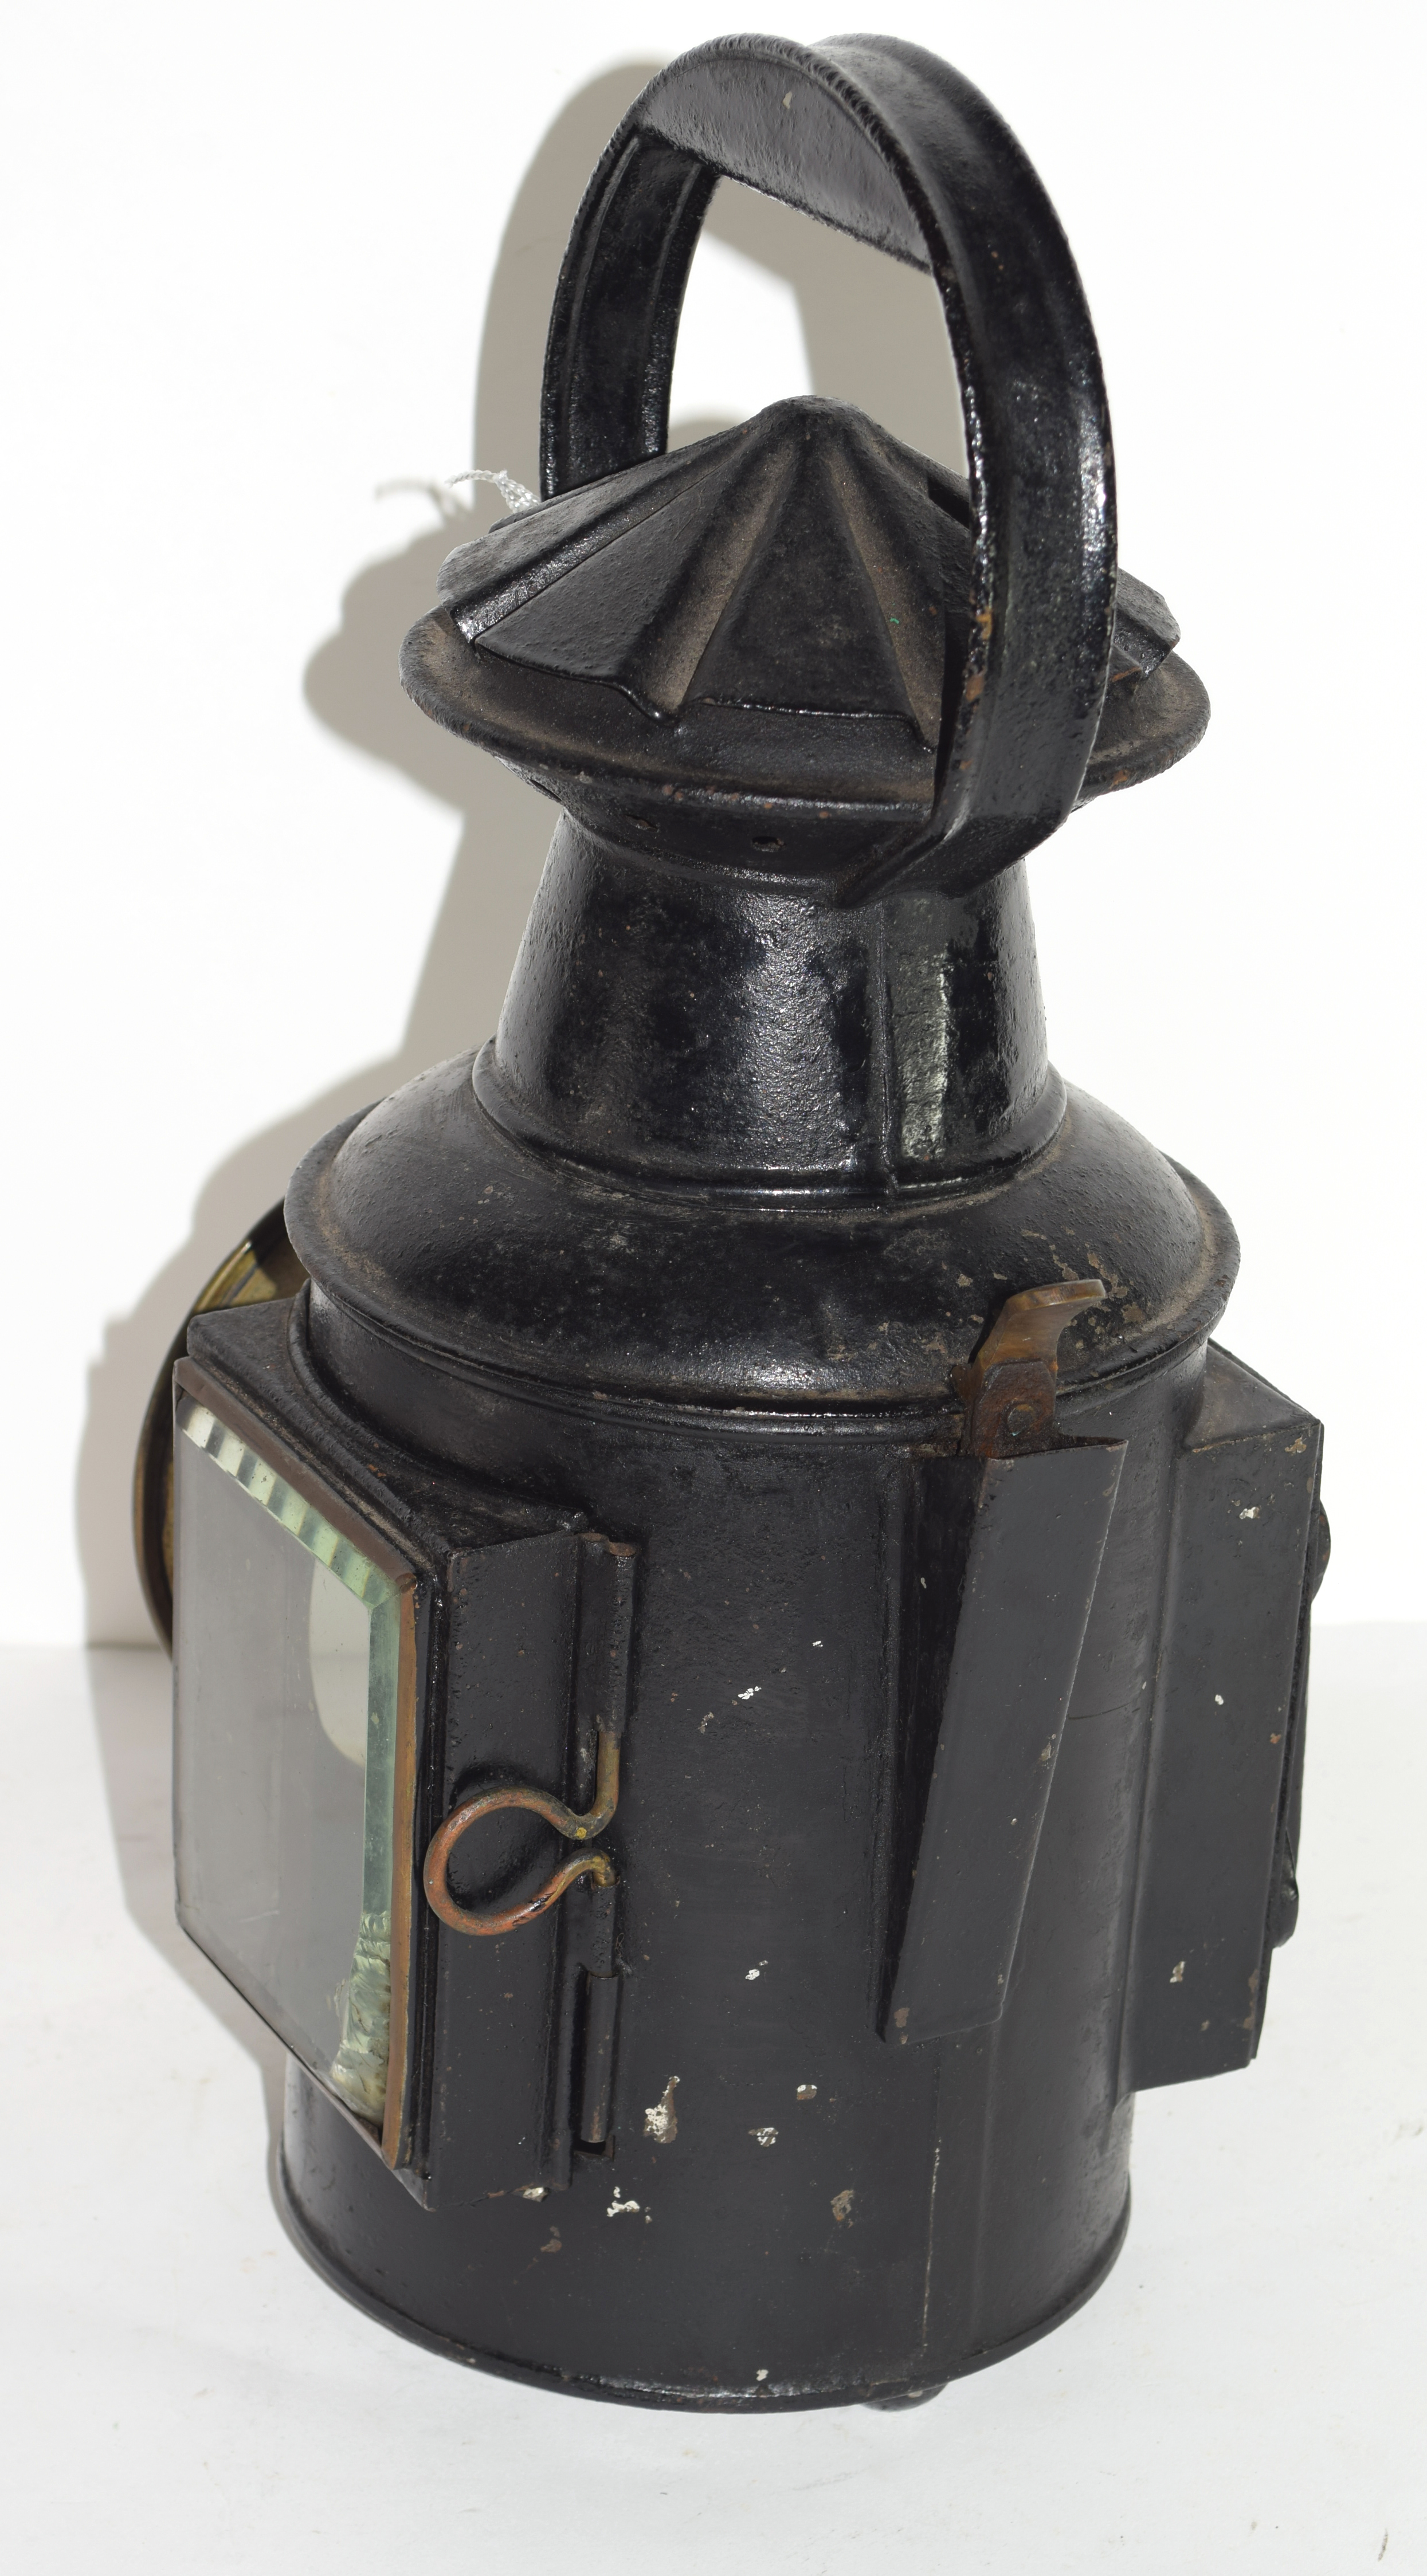 Railway light with stamp for G Polkey, 1903, Birmingham - Image 4 of 6